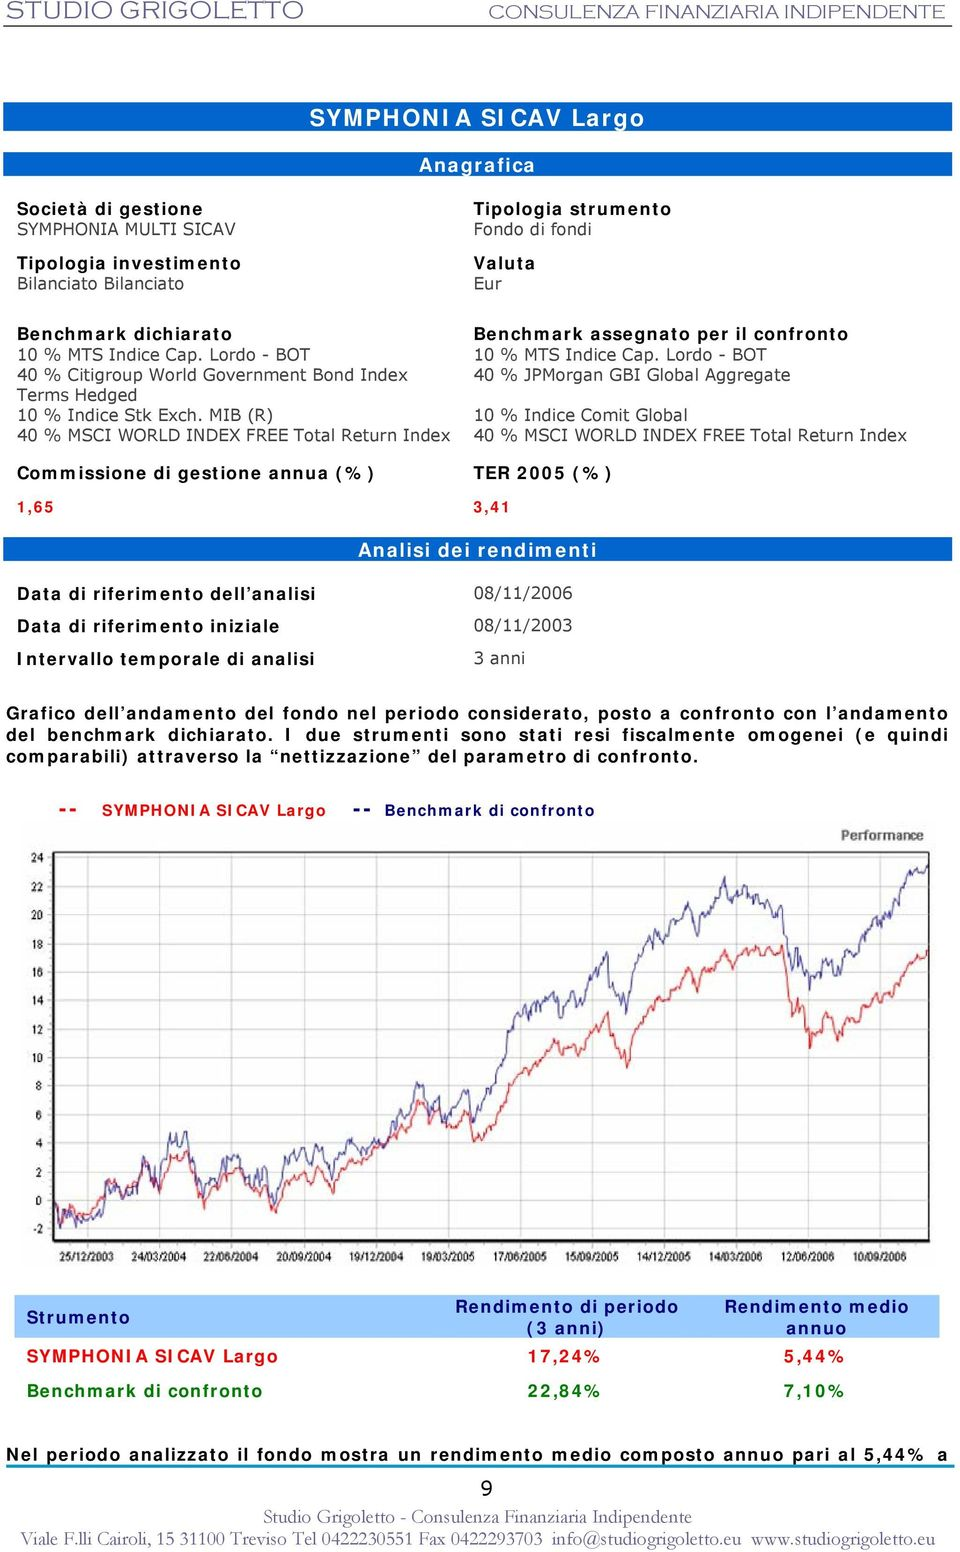 MIB (R) 40 % MSCI WORLD INDEX FREE Total Return Index Tipologia strumento Fondo di fondi Valuta Eur Benchmark assegnato per il confronto 10 % MTS Indice Cap.